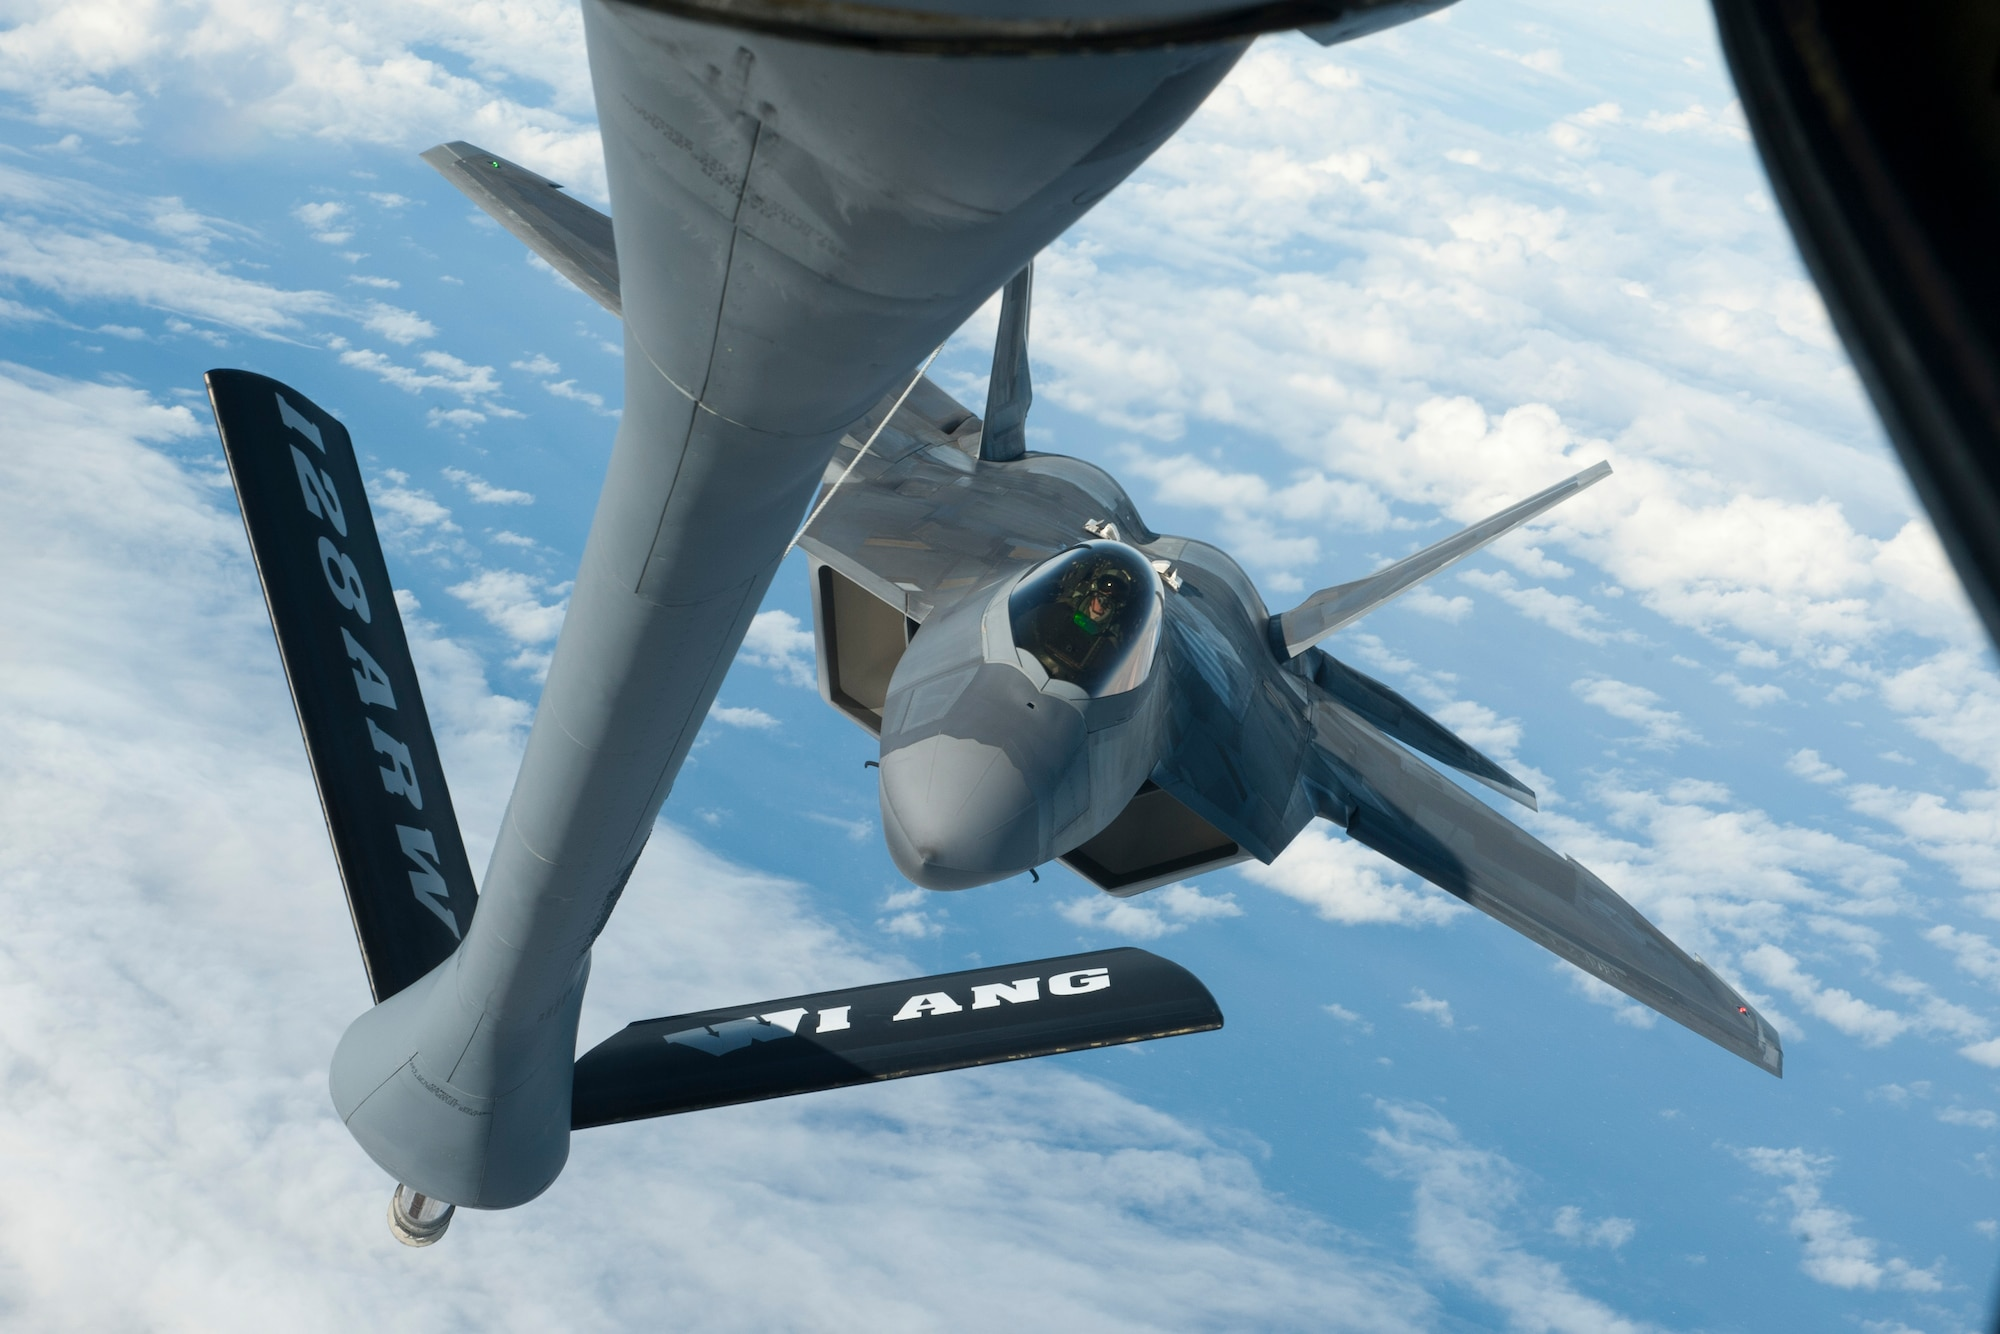 A Hawaii Air National Guard F-22 Raptor approaches a Wisconsin Air National Guard KC-135 Stratotanker to receive aerial refueling Dec. 11, 2018, over the Pacific Ocean, near the Hawaiian Islands